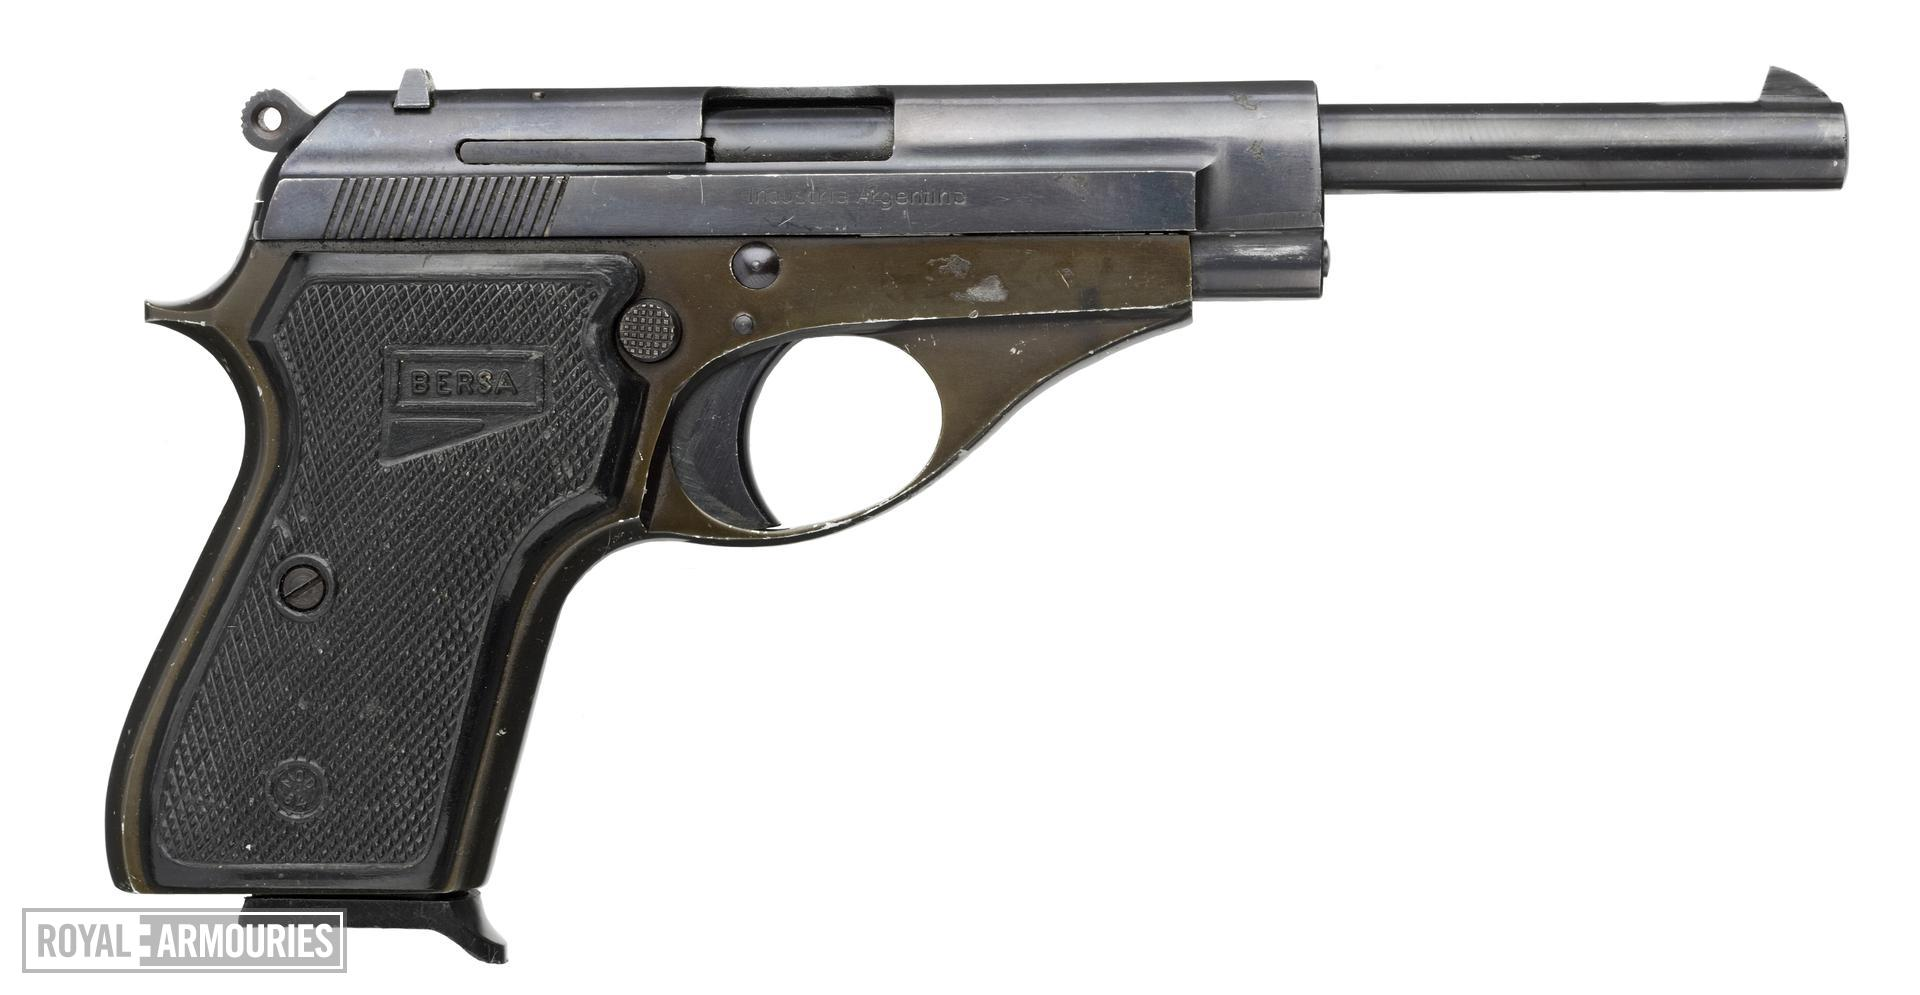 Rimfire self-loading pistol - Bersa Model 62